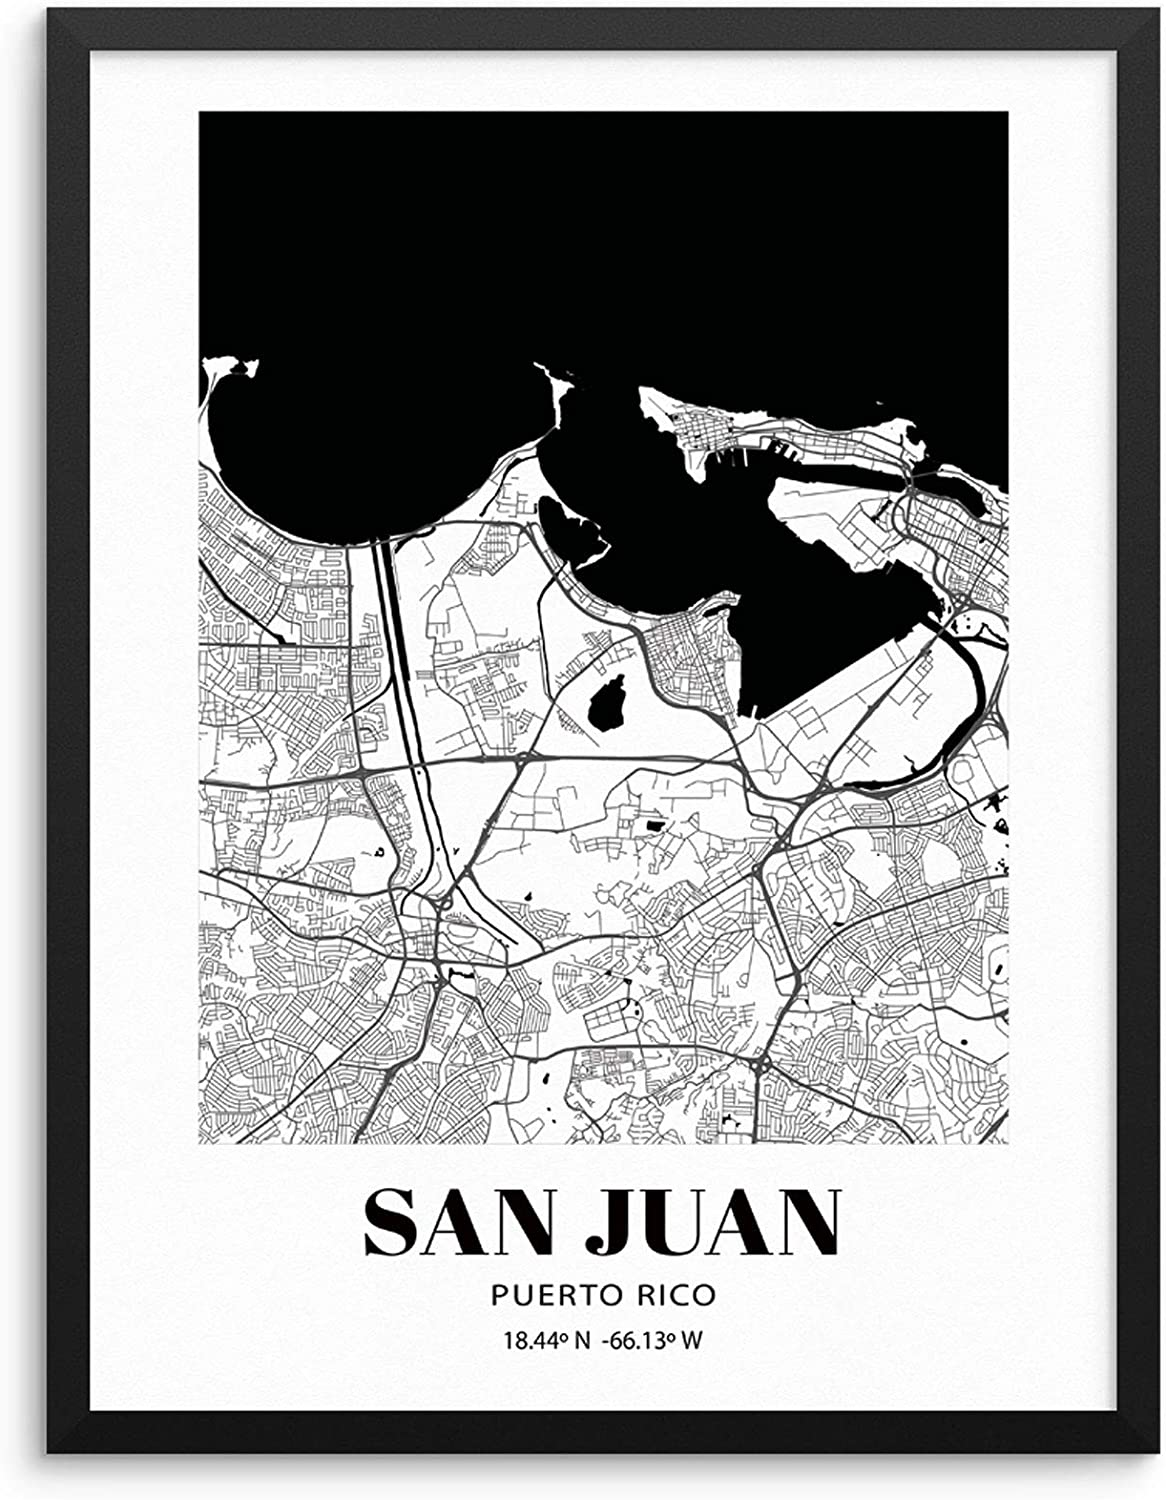 """Puerto Rico City Grid Map Art Print Cityscape Road Map Wall Poster 11""""x14"""" UNFRAMED Black White Modern Urban Home Decor Artwork for Living Room Bedroom Entryway Home Office or Gift (PUERTO RICO)"""